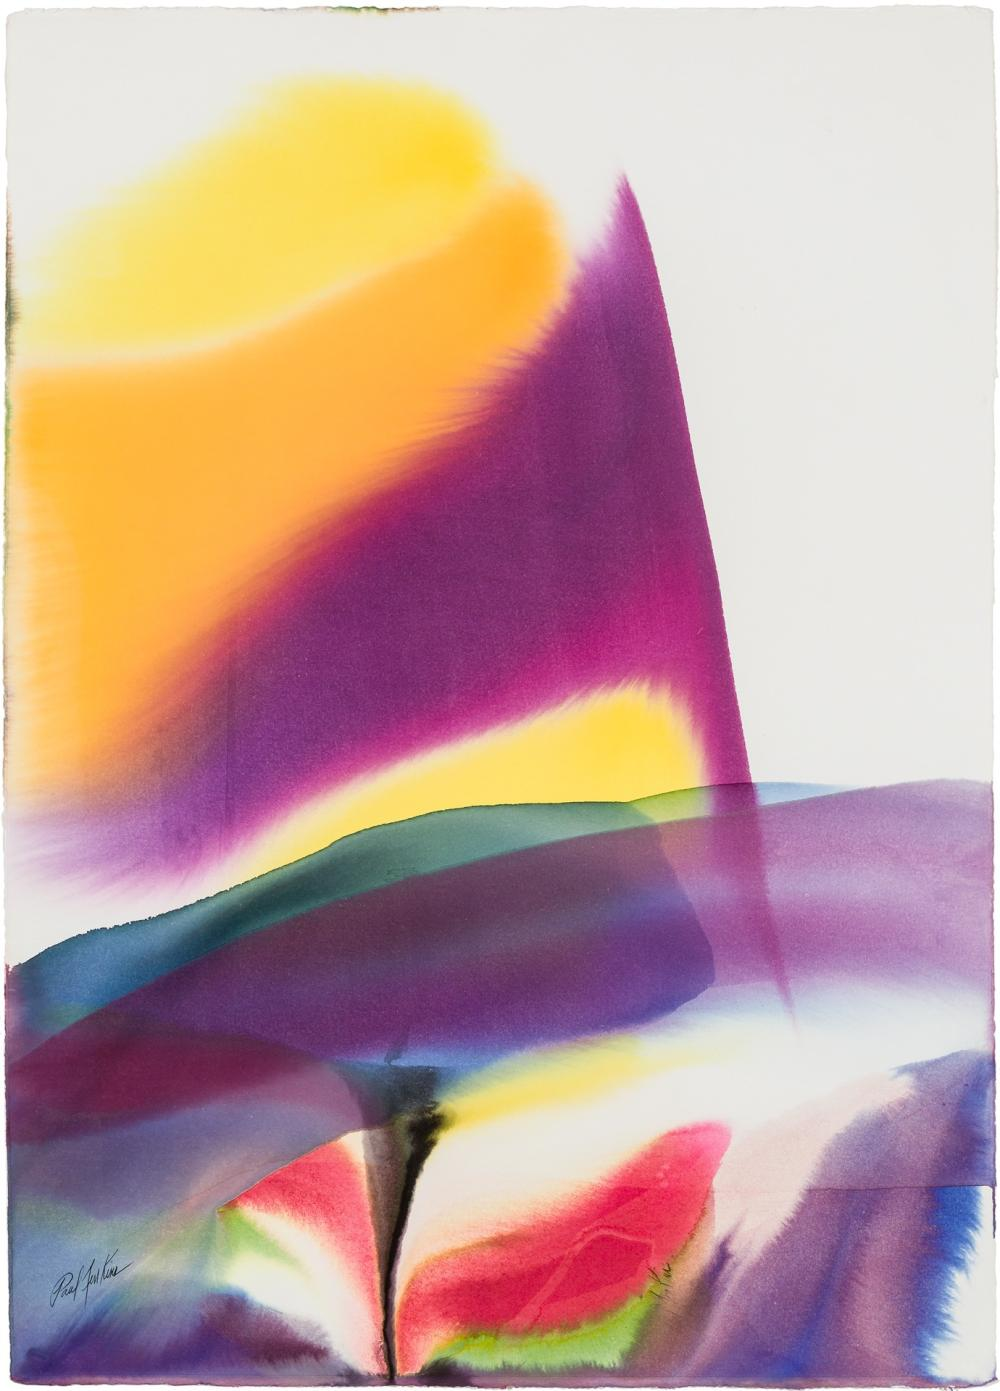 PAUL JENKINS, American (1923-2012), Untitled, watercolor on Arches paper, 41 1/2 x 30 inches